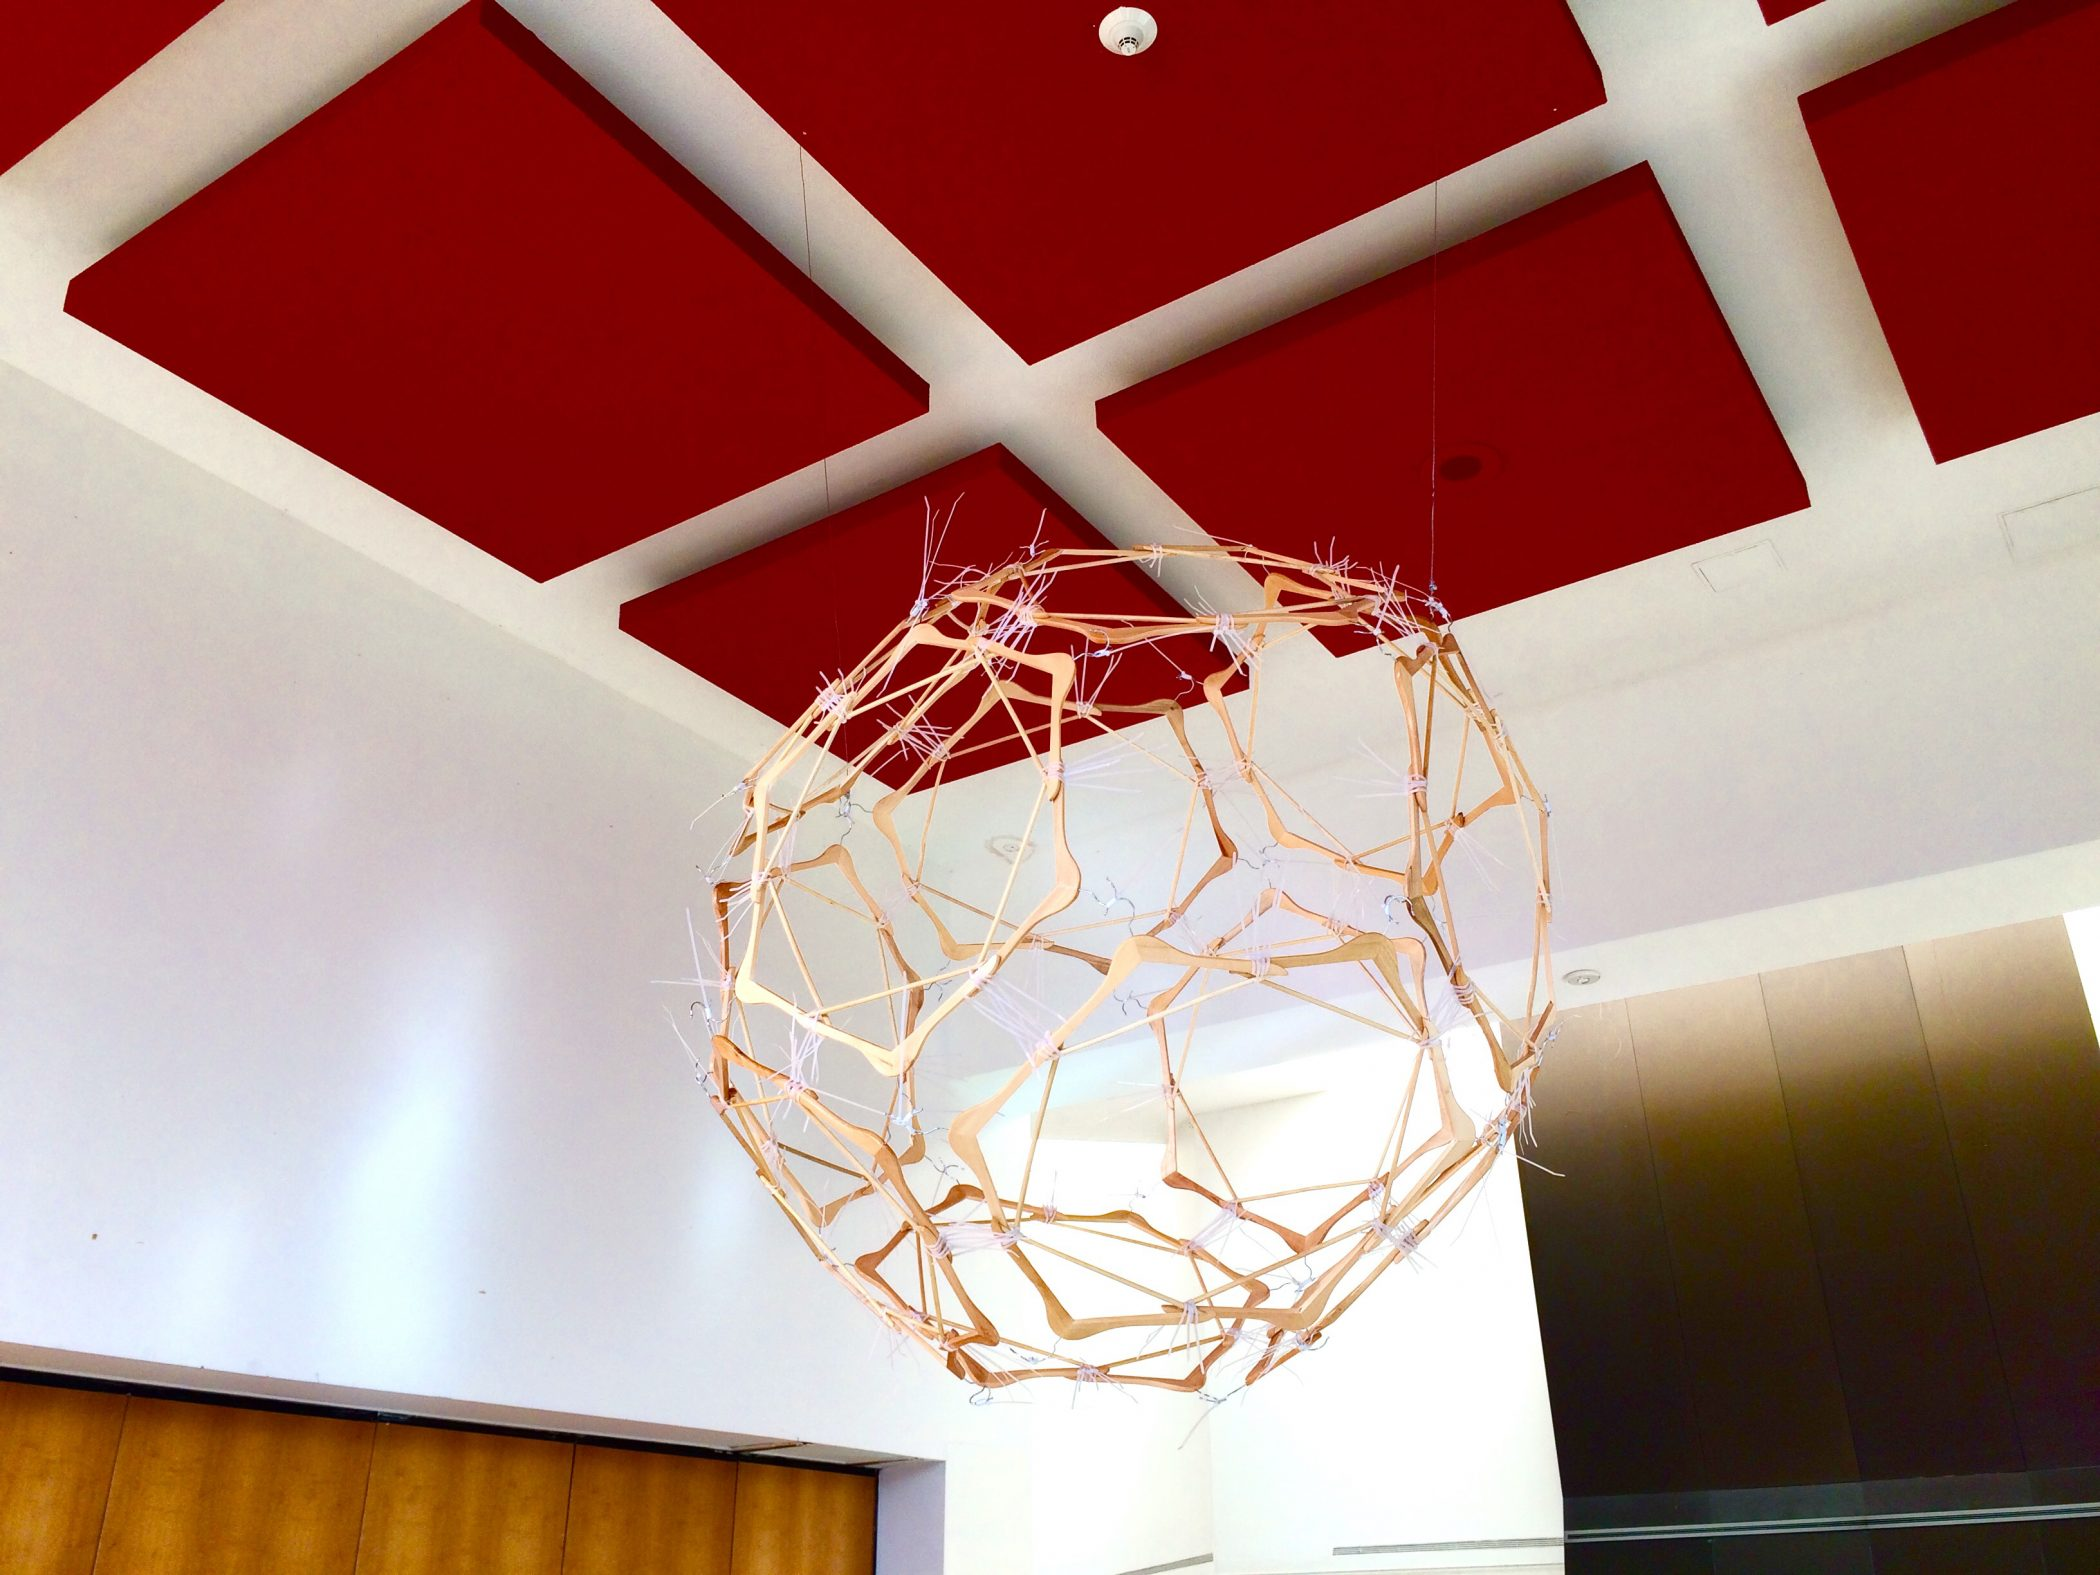 Edmond van der Bijl Cable tie and Wooden hanger global sphere sculpture for Green Night 2015 at the French Embassy, Washington DC